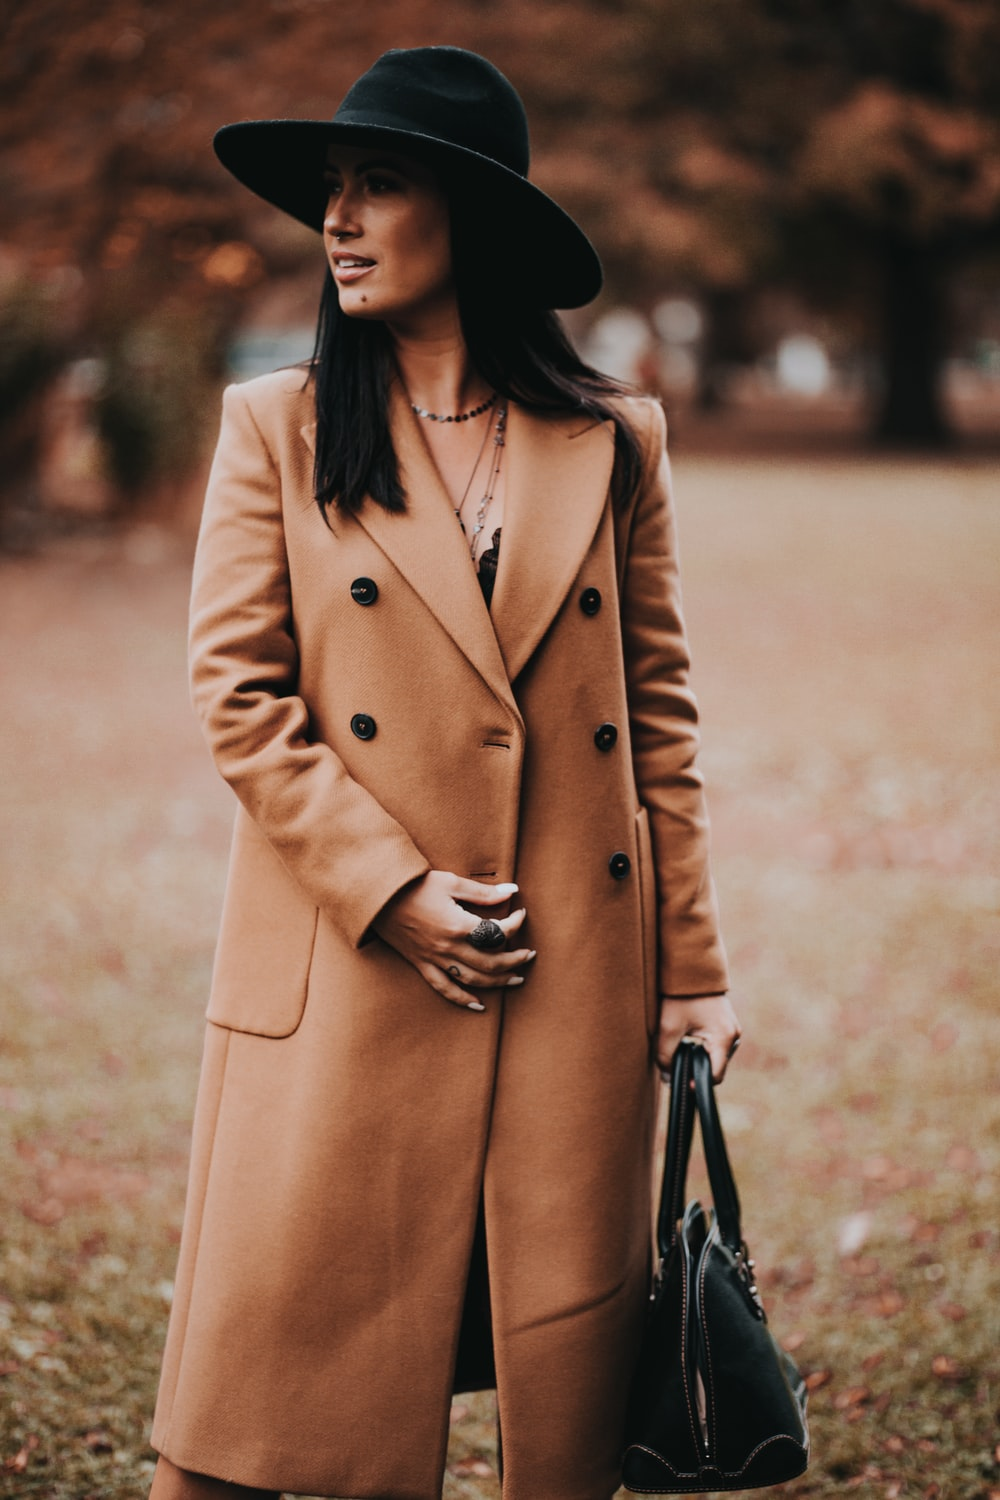 woman in brown coat standing on brown field during daytime